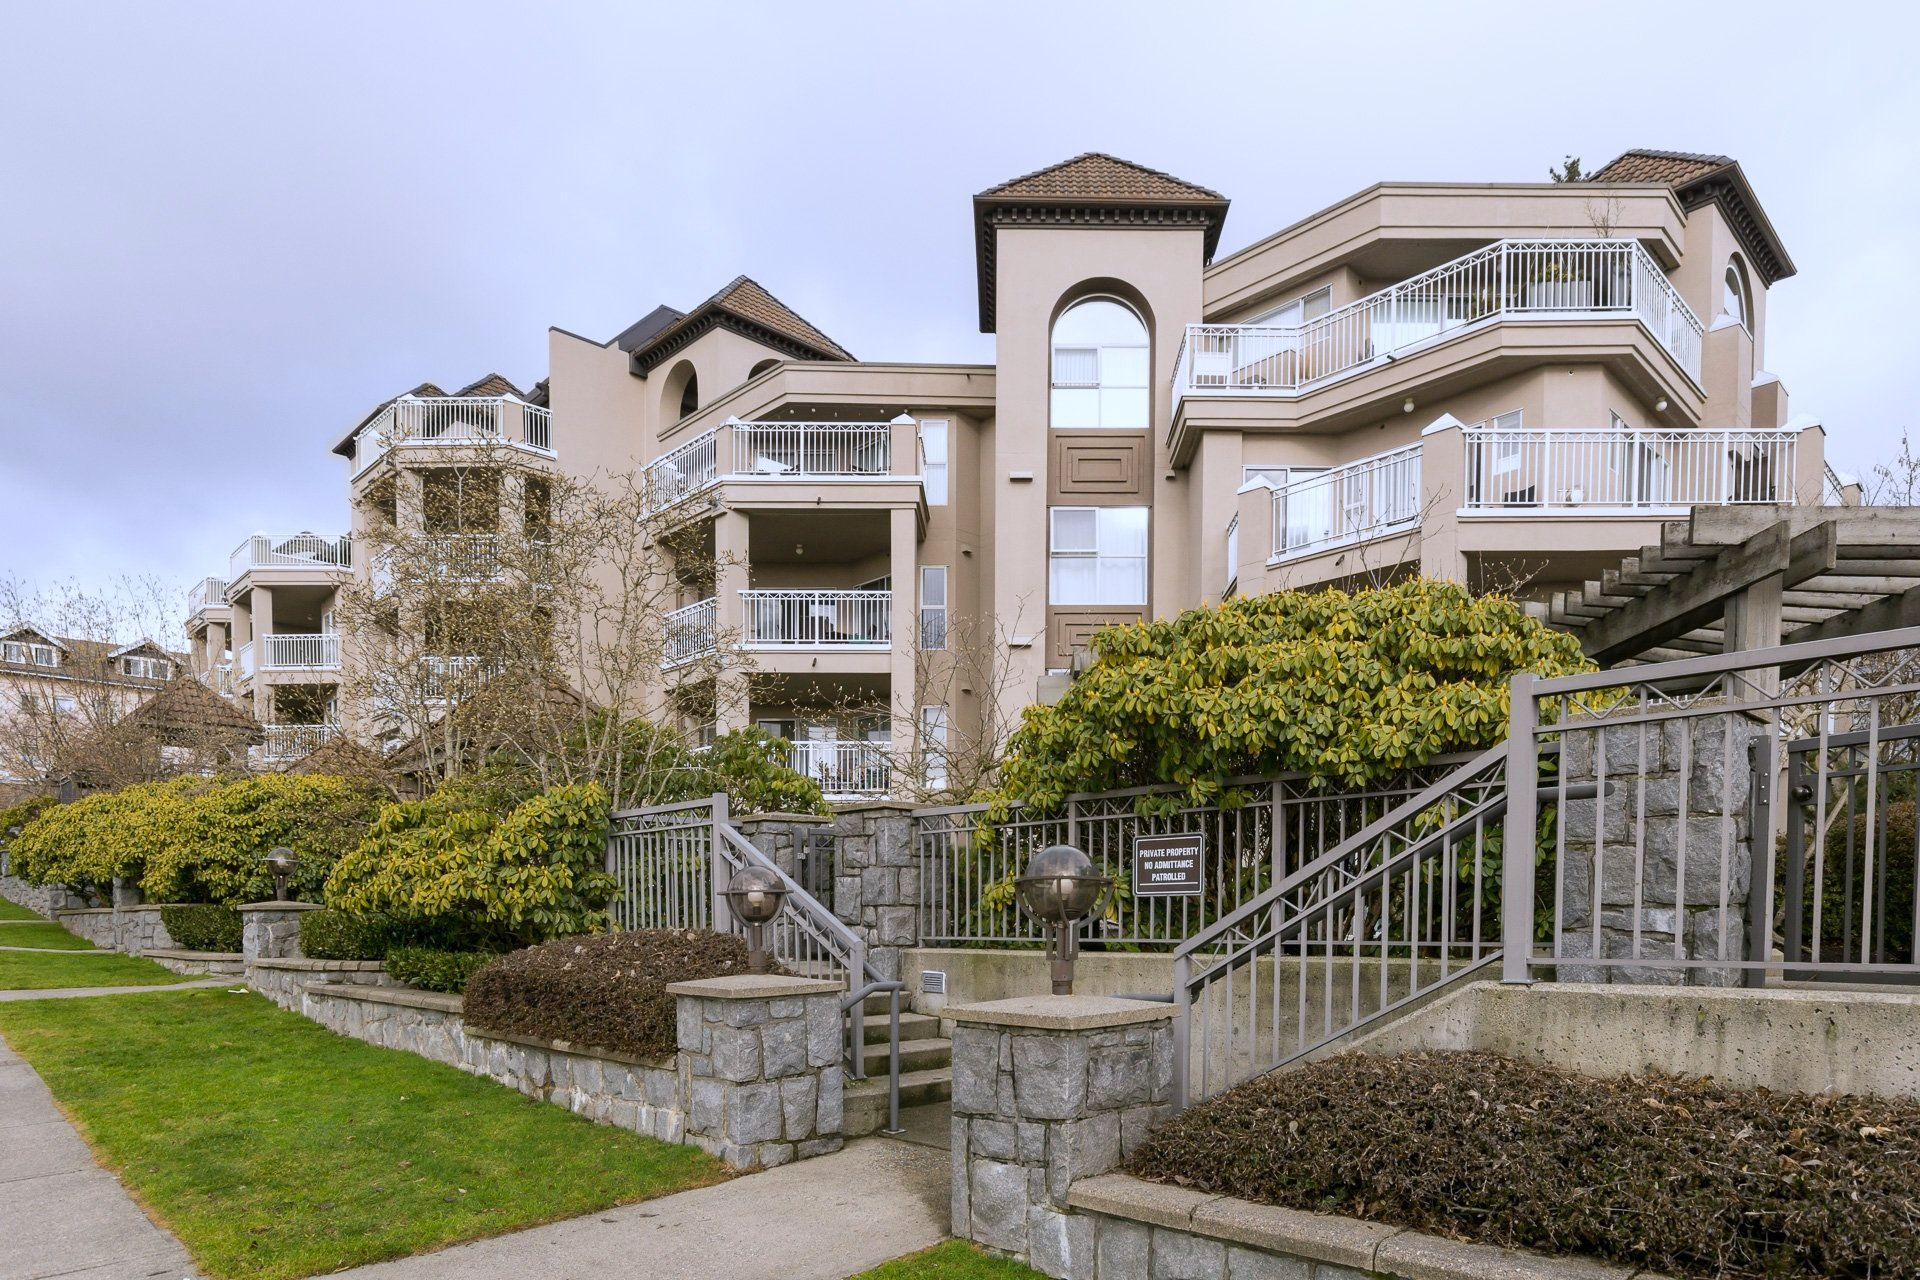 """Main Photo: 508 1128 SIXTH Avenue in New Westminster: Uptown NW Condo for sale in """"Kingsgate"""" : MLS®# R2230394"""